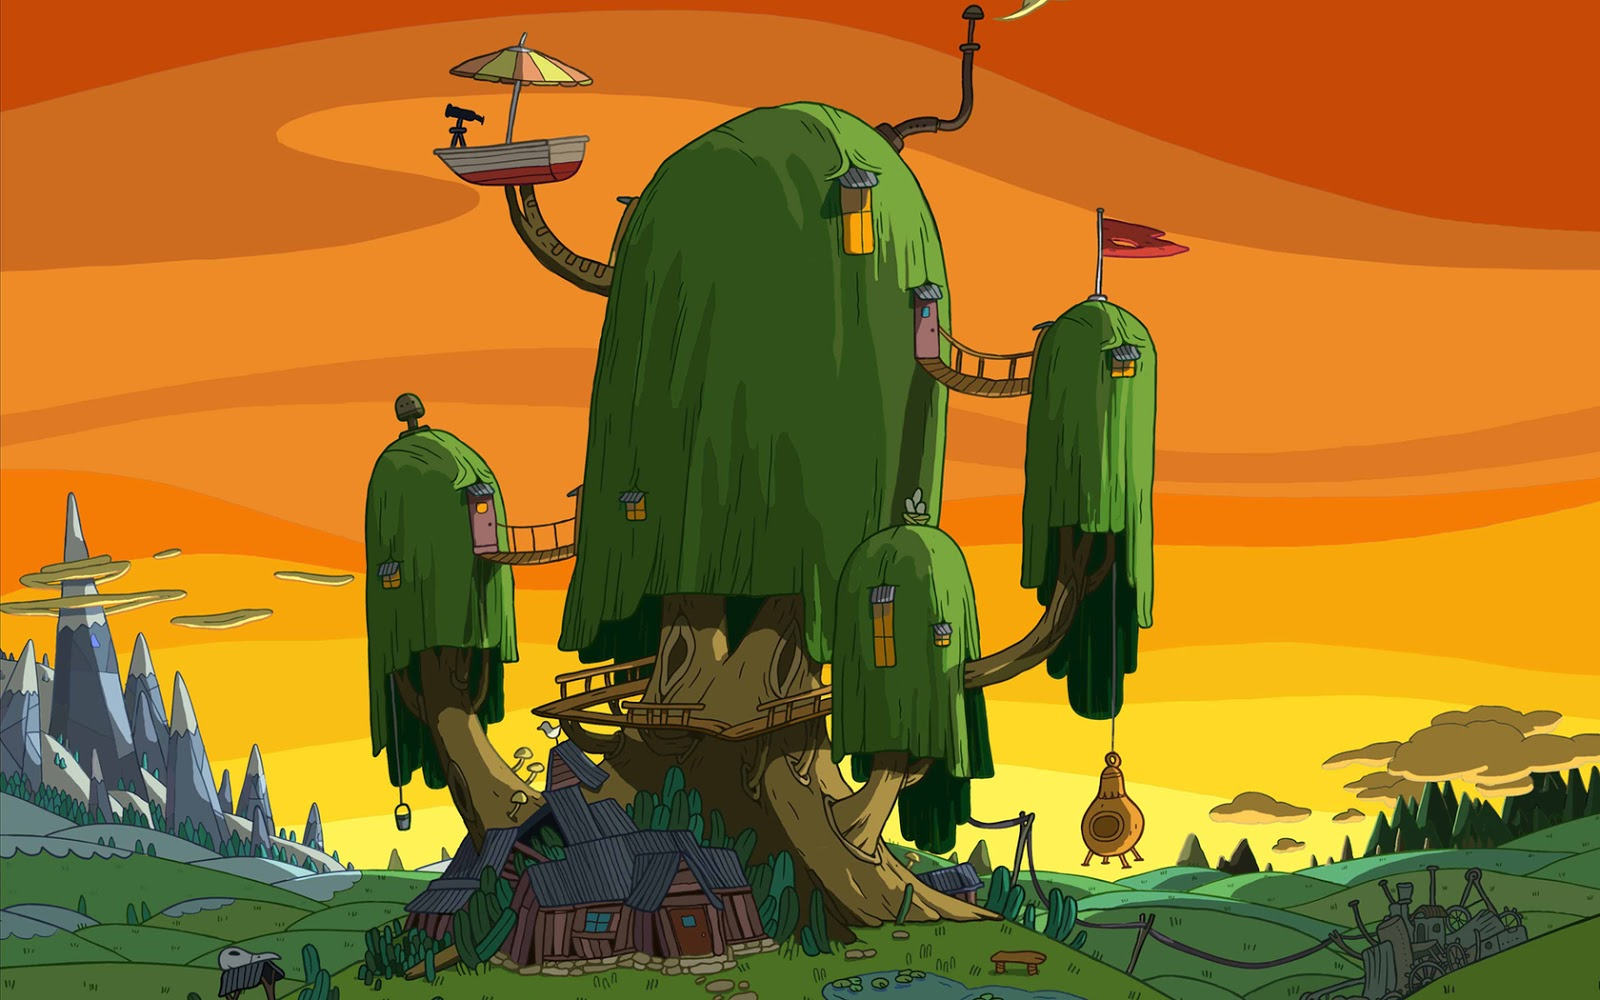 http://2.bp.blogspot.com/-RP1KmmKM9NM/UWDCRGZov1I/AAAAAAAAA5k/4Q3wRshnfCQ/s1600/Adventure+Time+Tree+House+Wallpapers+1680x1050.jpeg